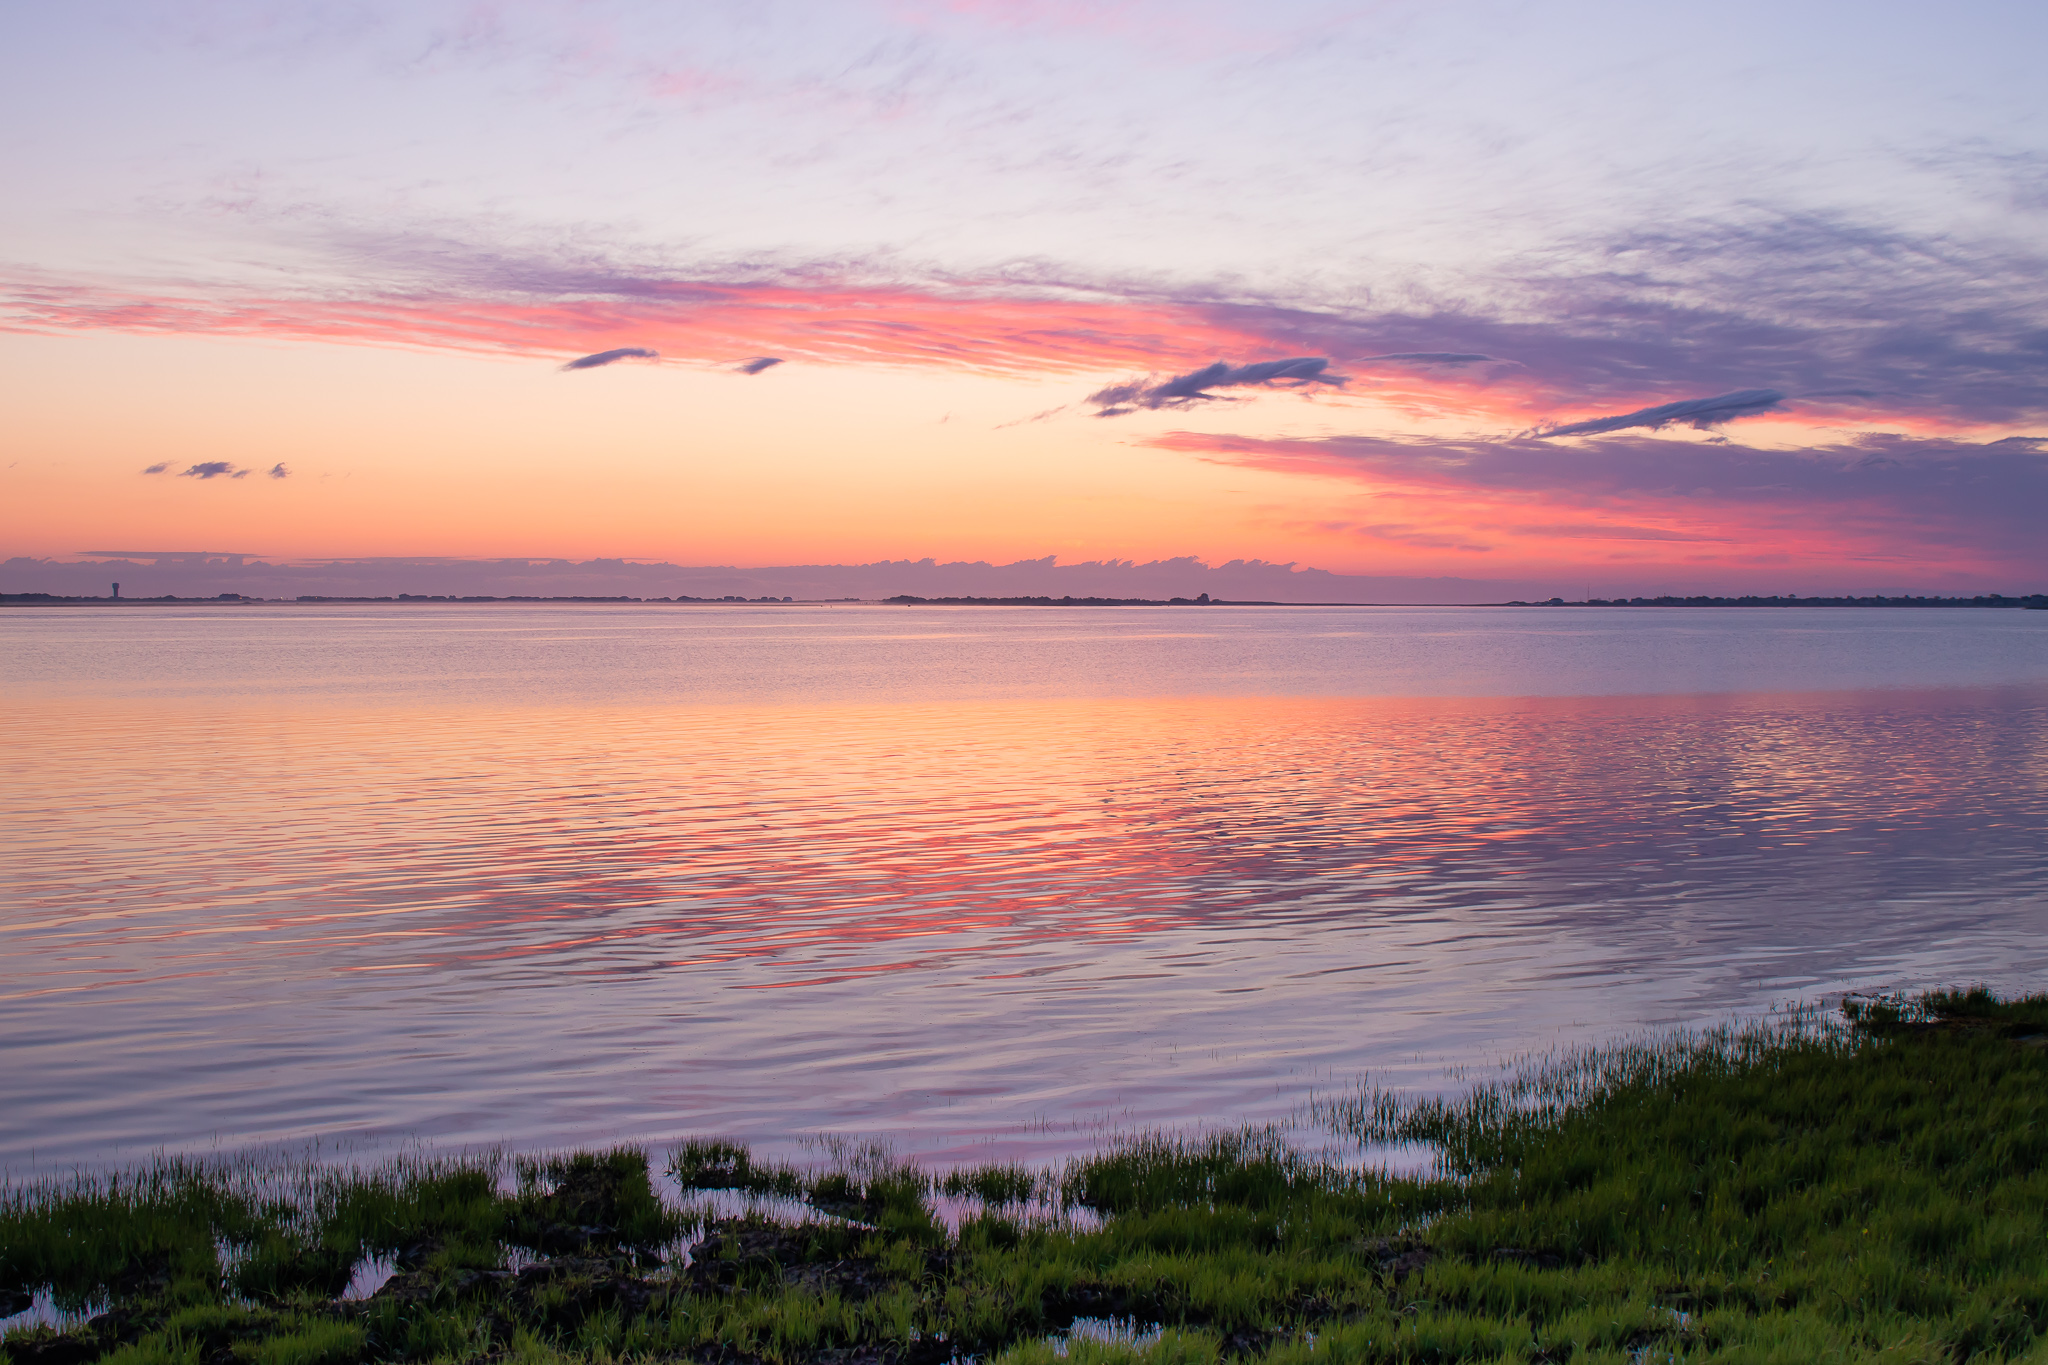 Sunset in Joppa Park in Newburyport, MA photographed by Vision Balm in Charleston, SC.